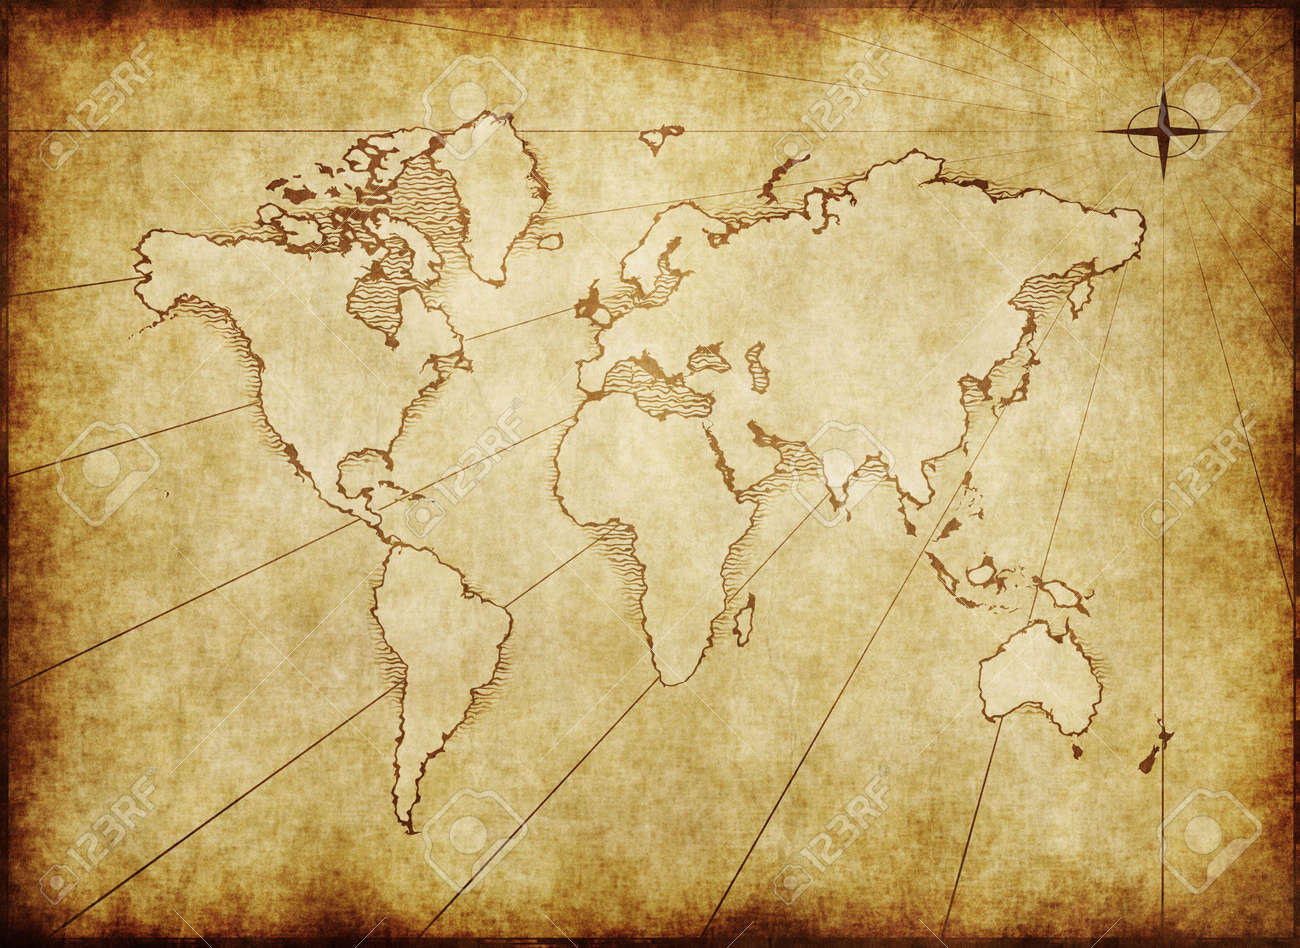 An Old World Map Drawn Onto Parchment Paper Stock Photo Picture And